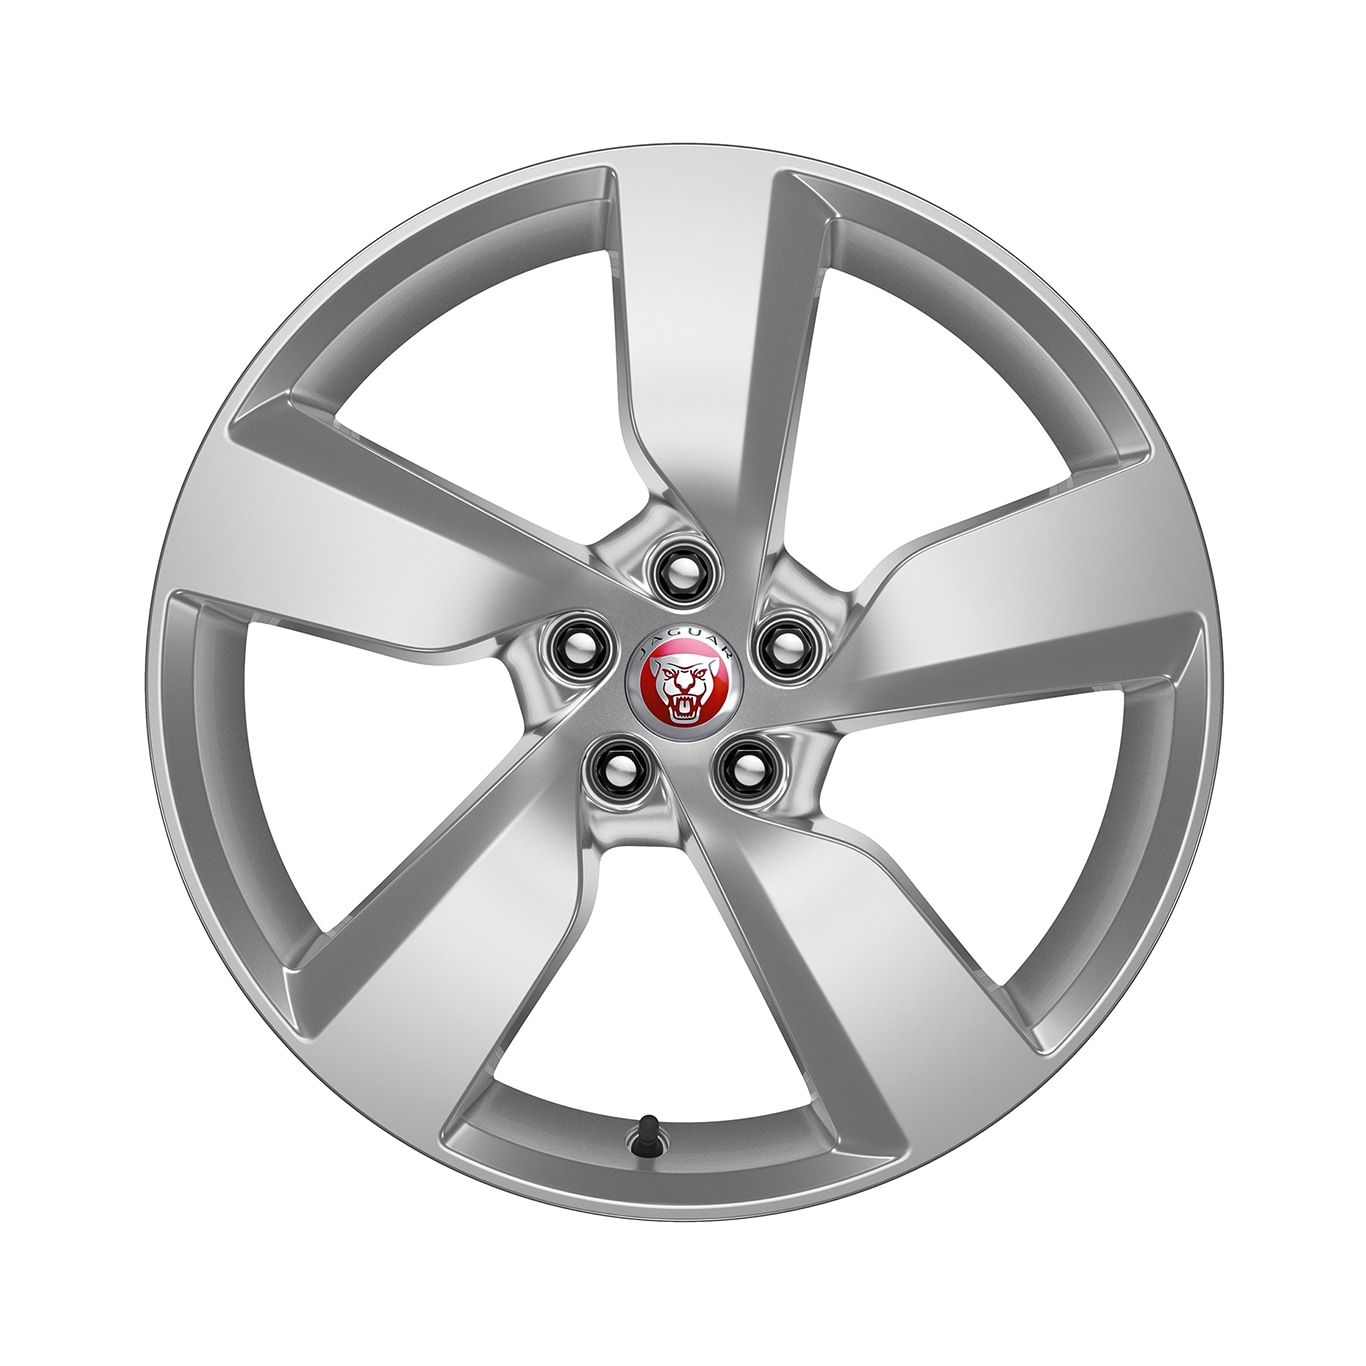 "Alloy Wheel - 19"" 5 Spoke, 'Style 5049', with Silver Sparkle finish"